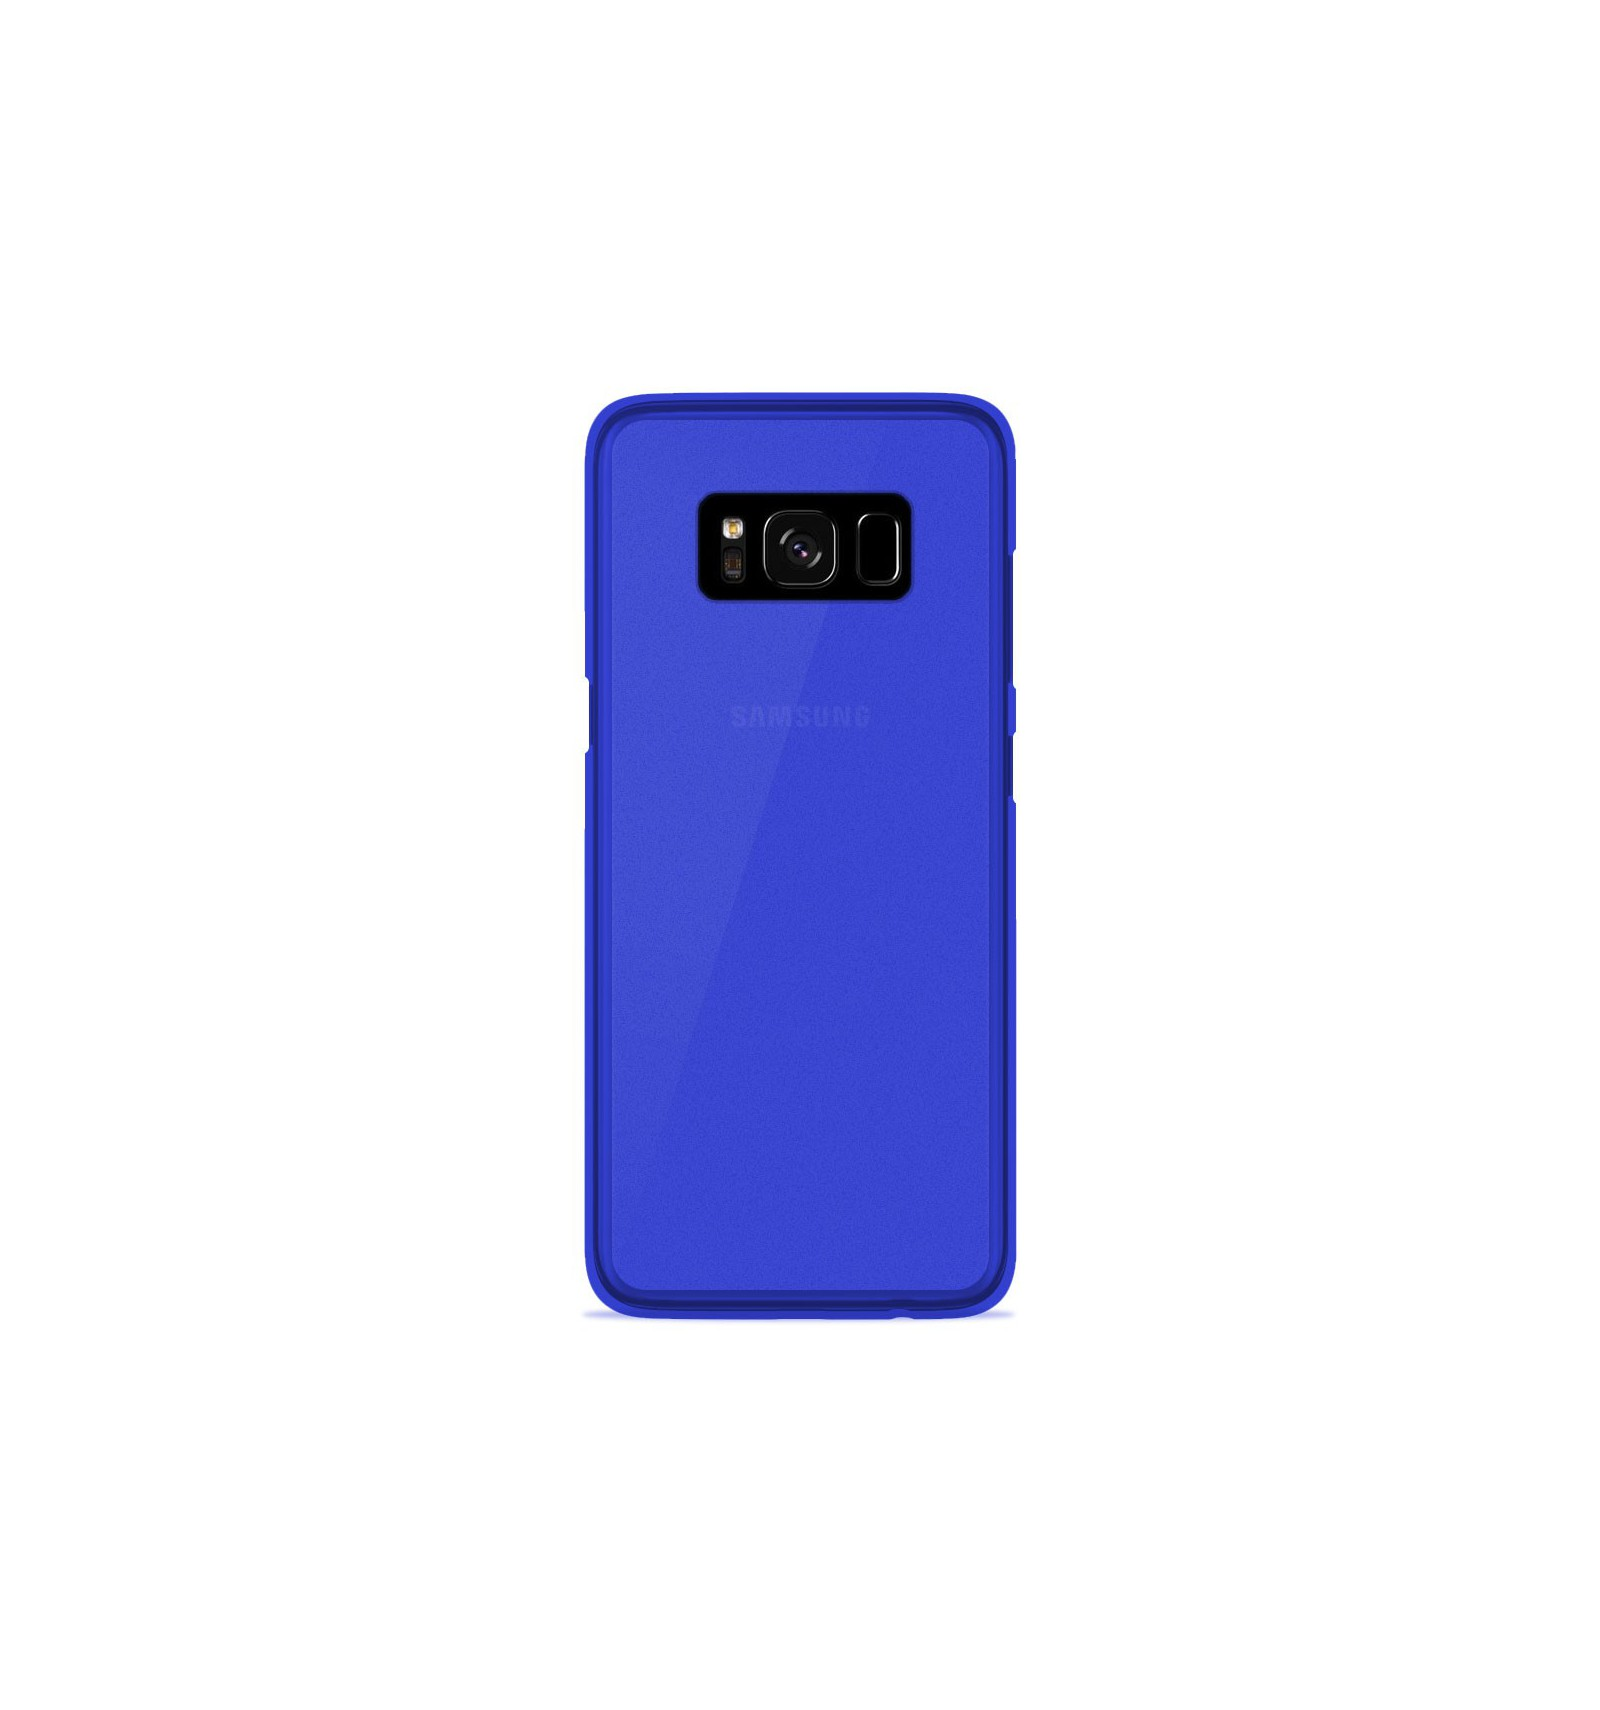 coque samsung galaxy s8 plus silicone gel givr bleu translucide. Black Bedroom Furniture Sets. Home Design Ideas